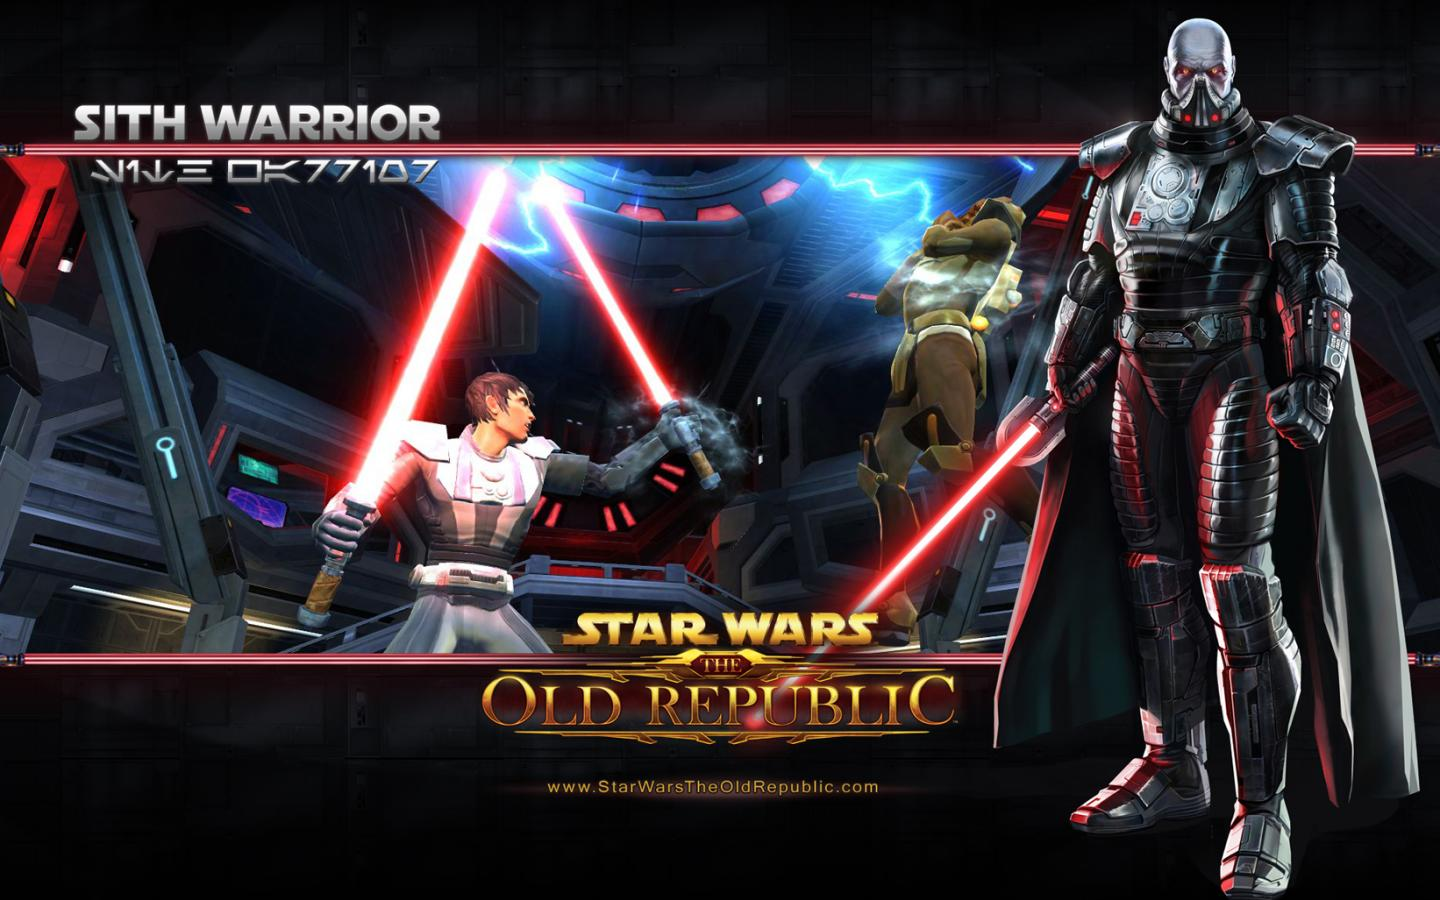 Игровые Star Wars Old Republic пикселей 1440x900